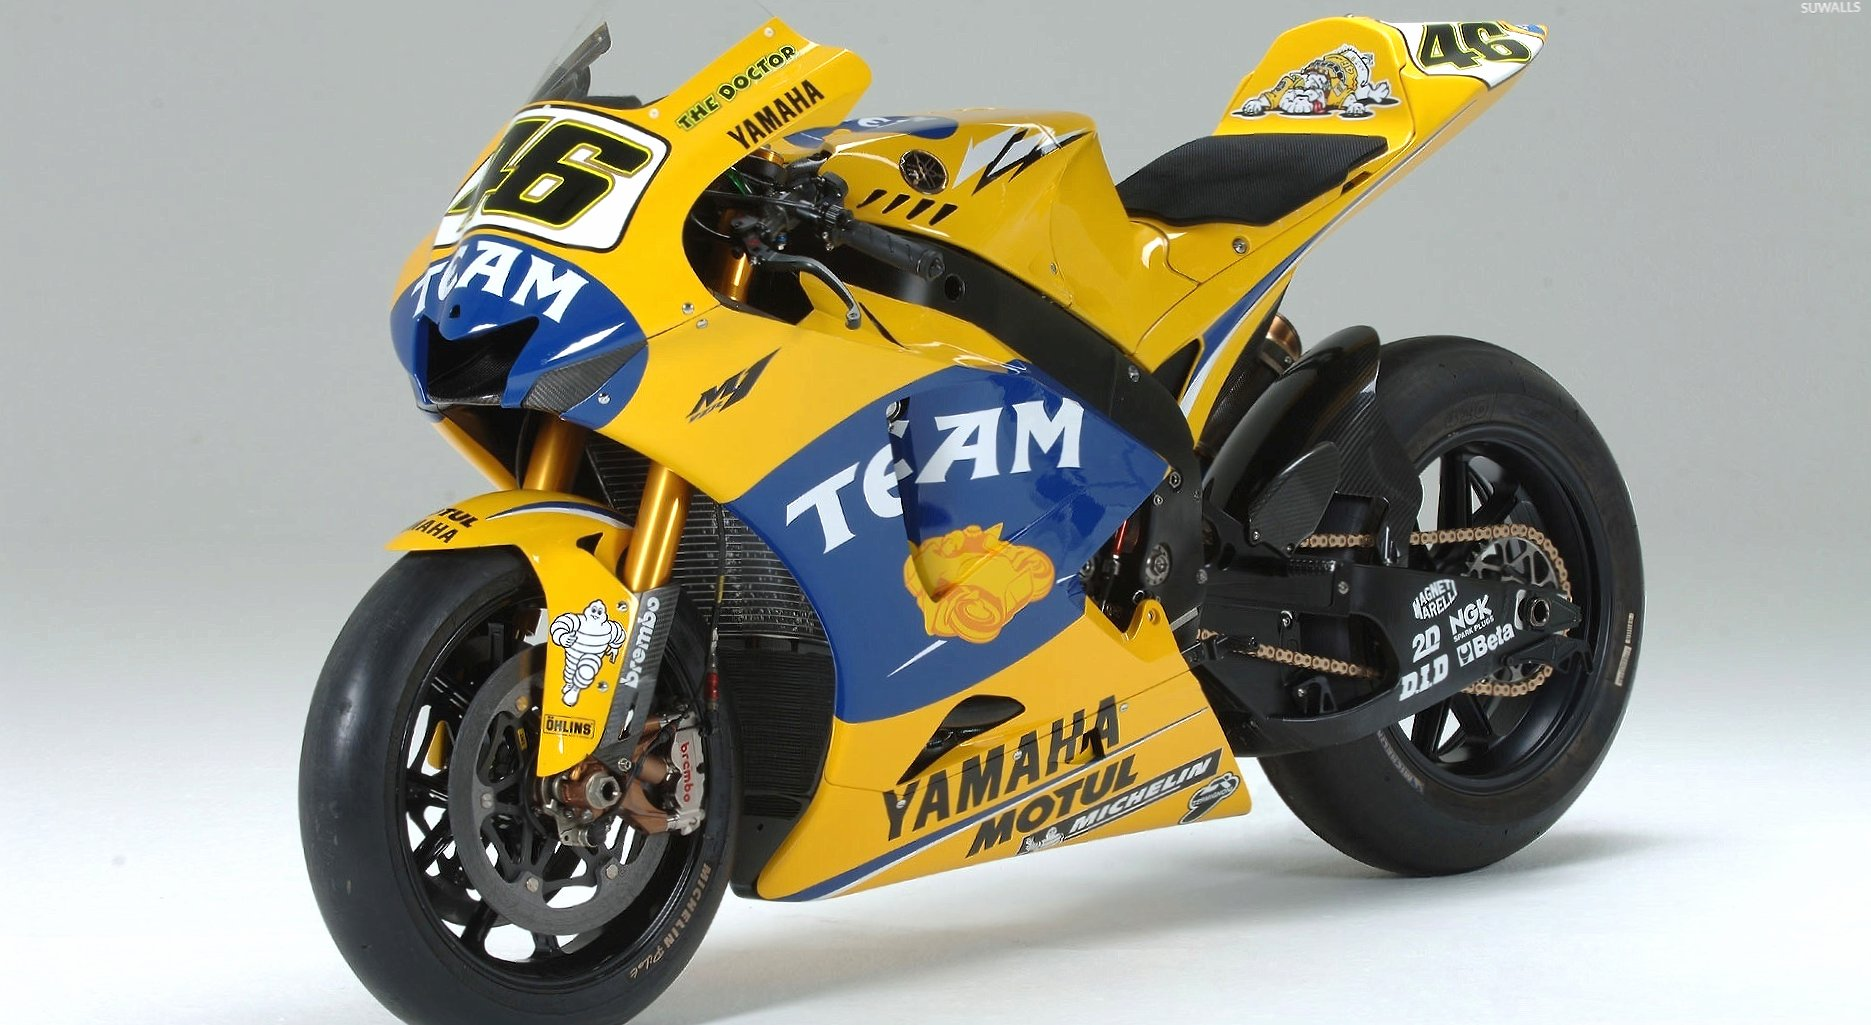 Yellow Yamaha YZR-M1 front side view wallpapers HD quality